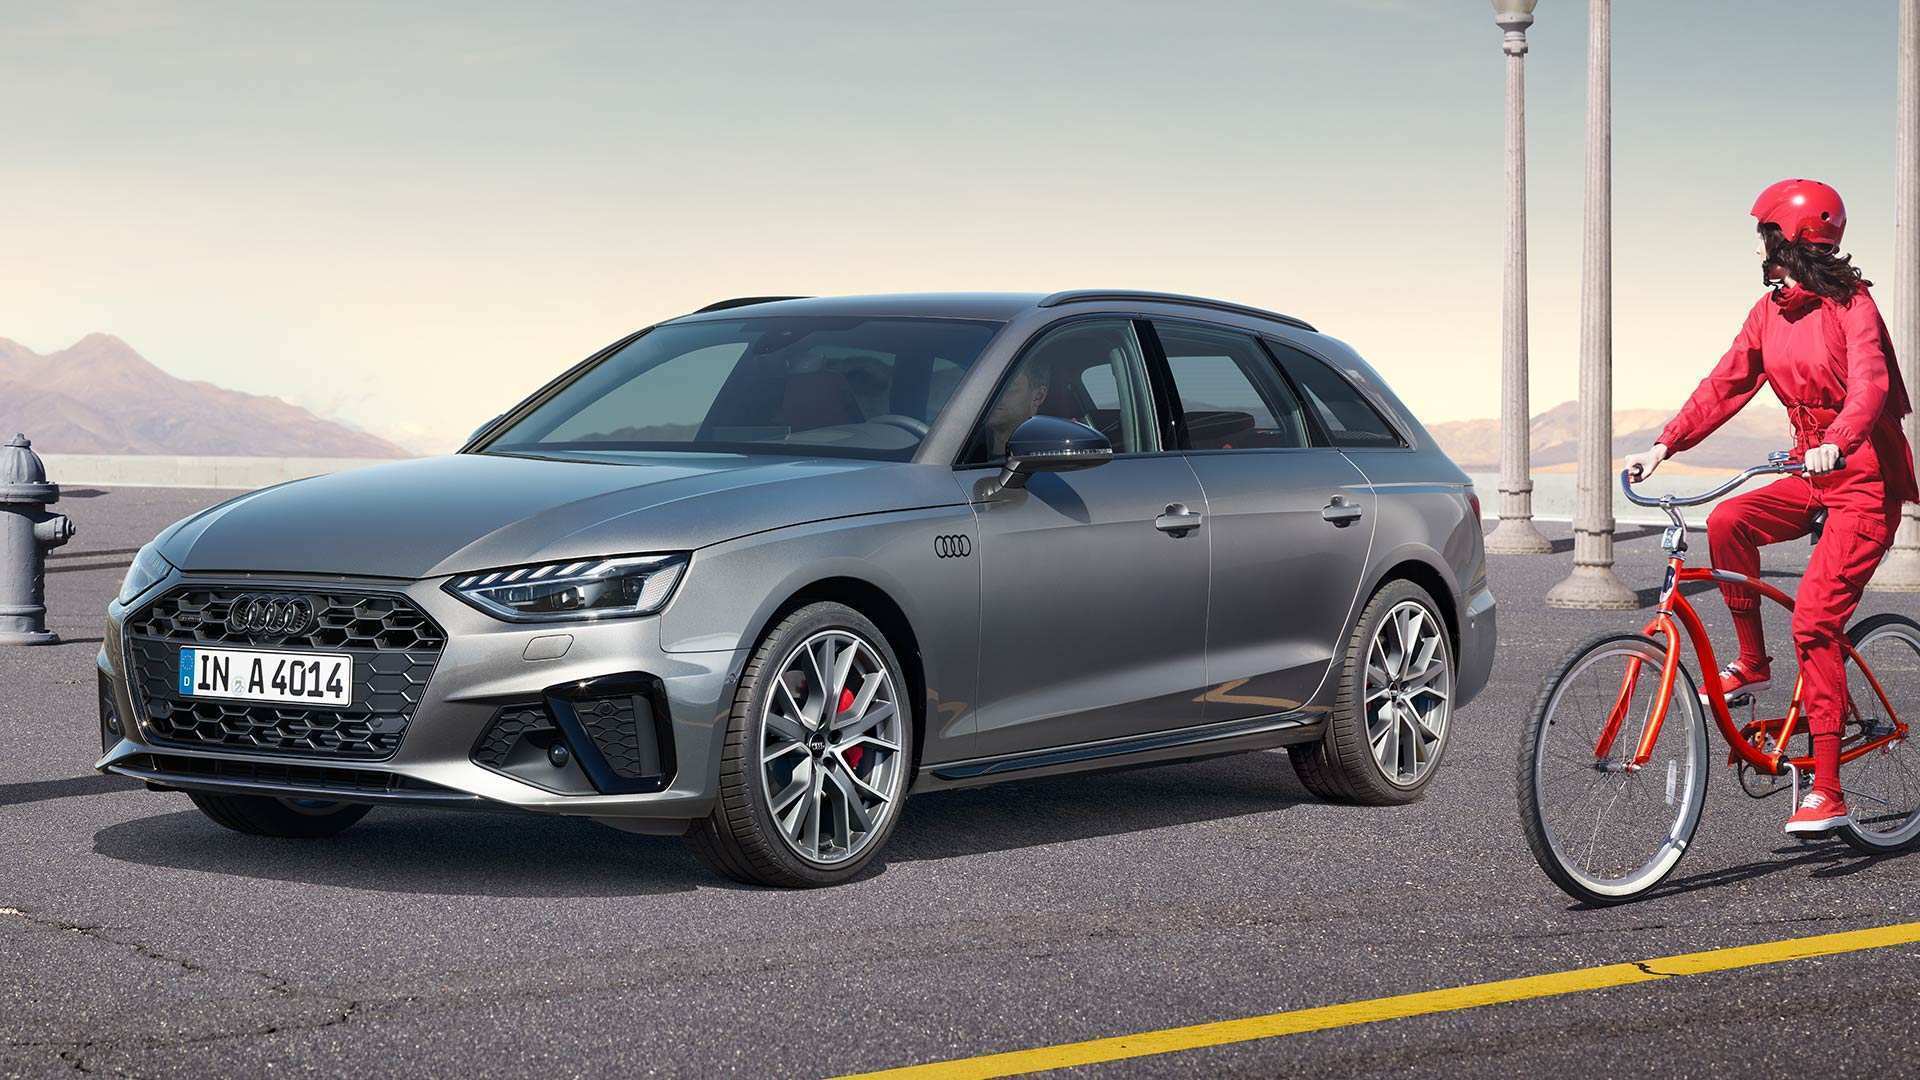 55 All New Audi Tdi 2020 History